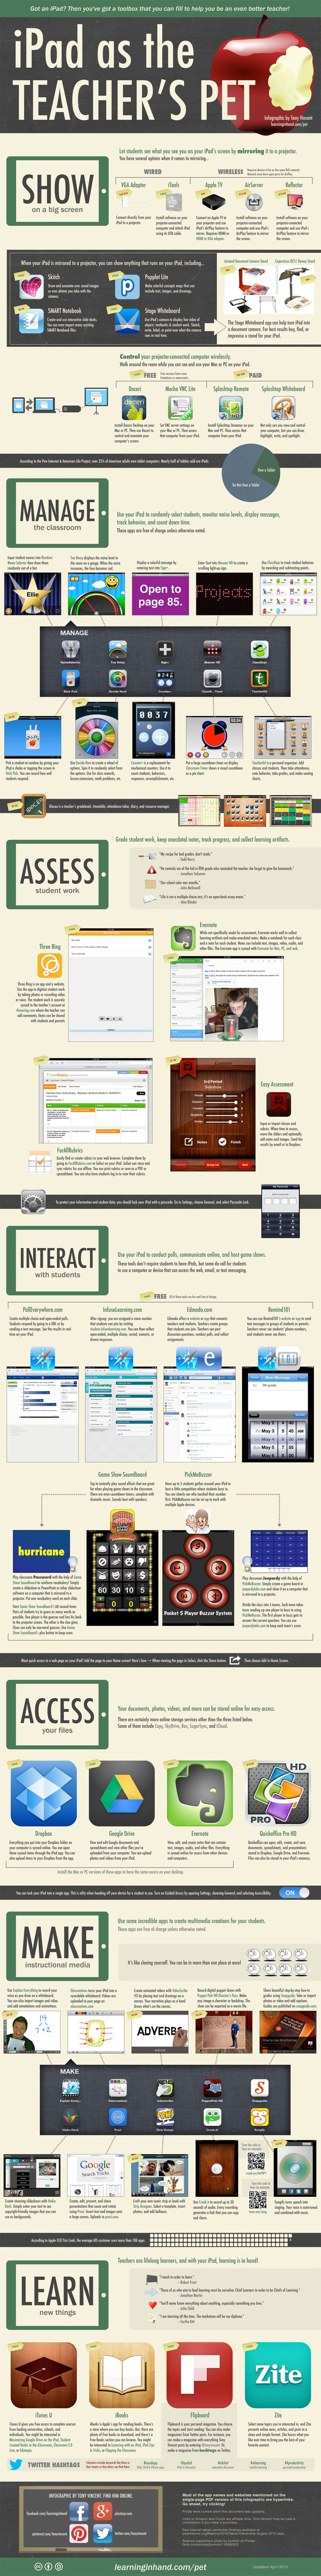 Great suggestions for using your iPad in the classroom!